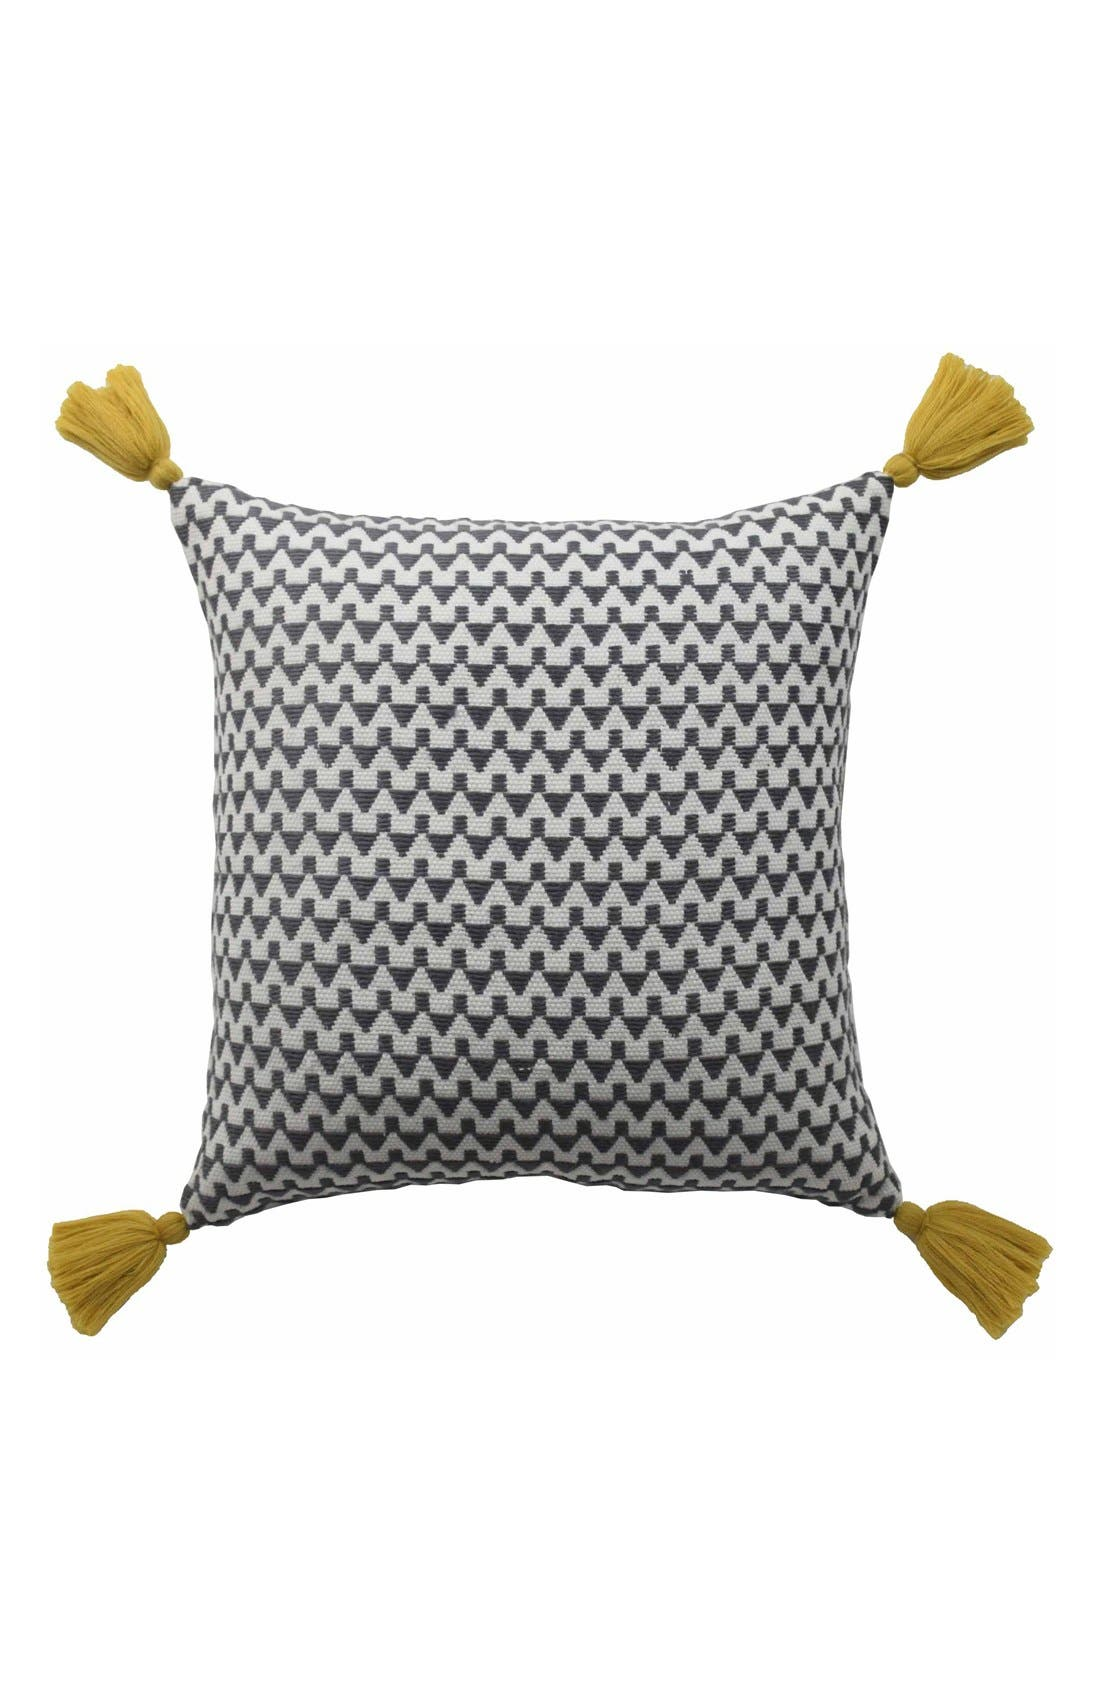 Main Image - Blissliving Home 'Winnie' Pillow